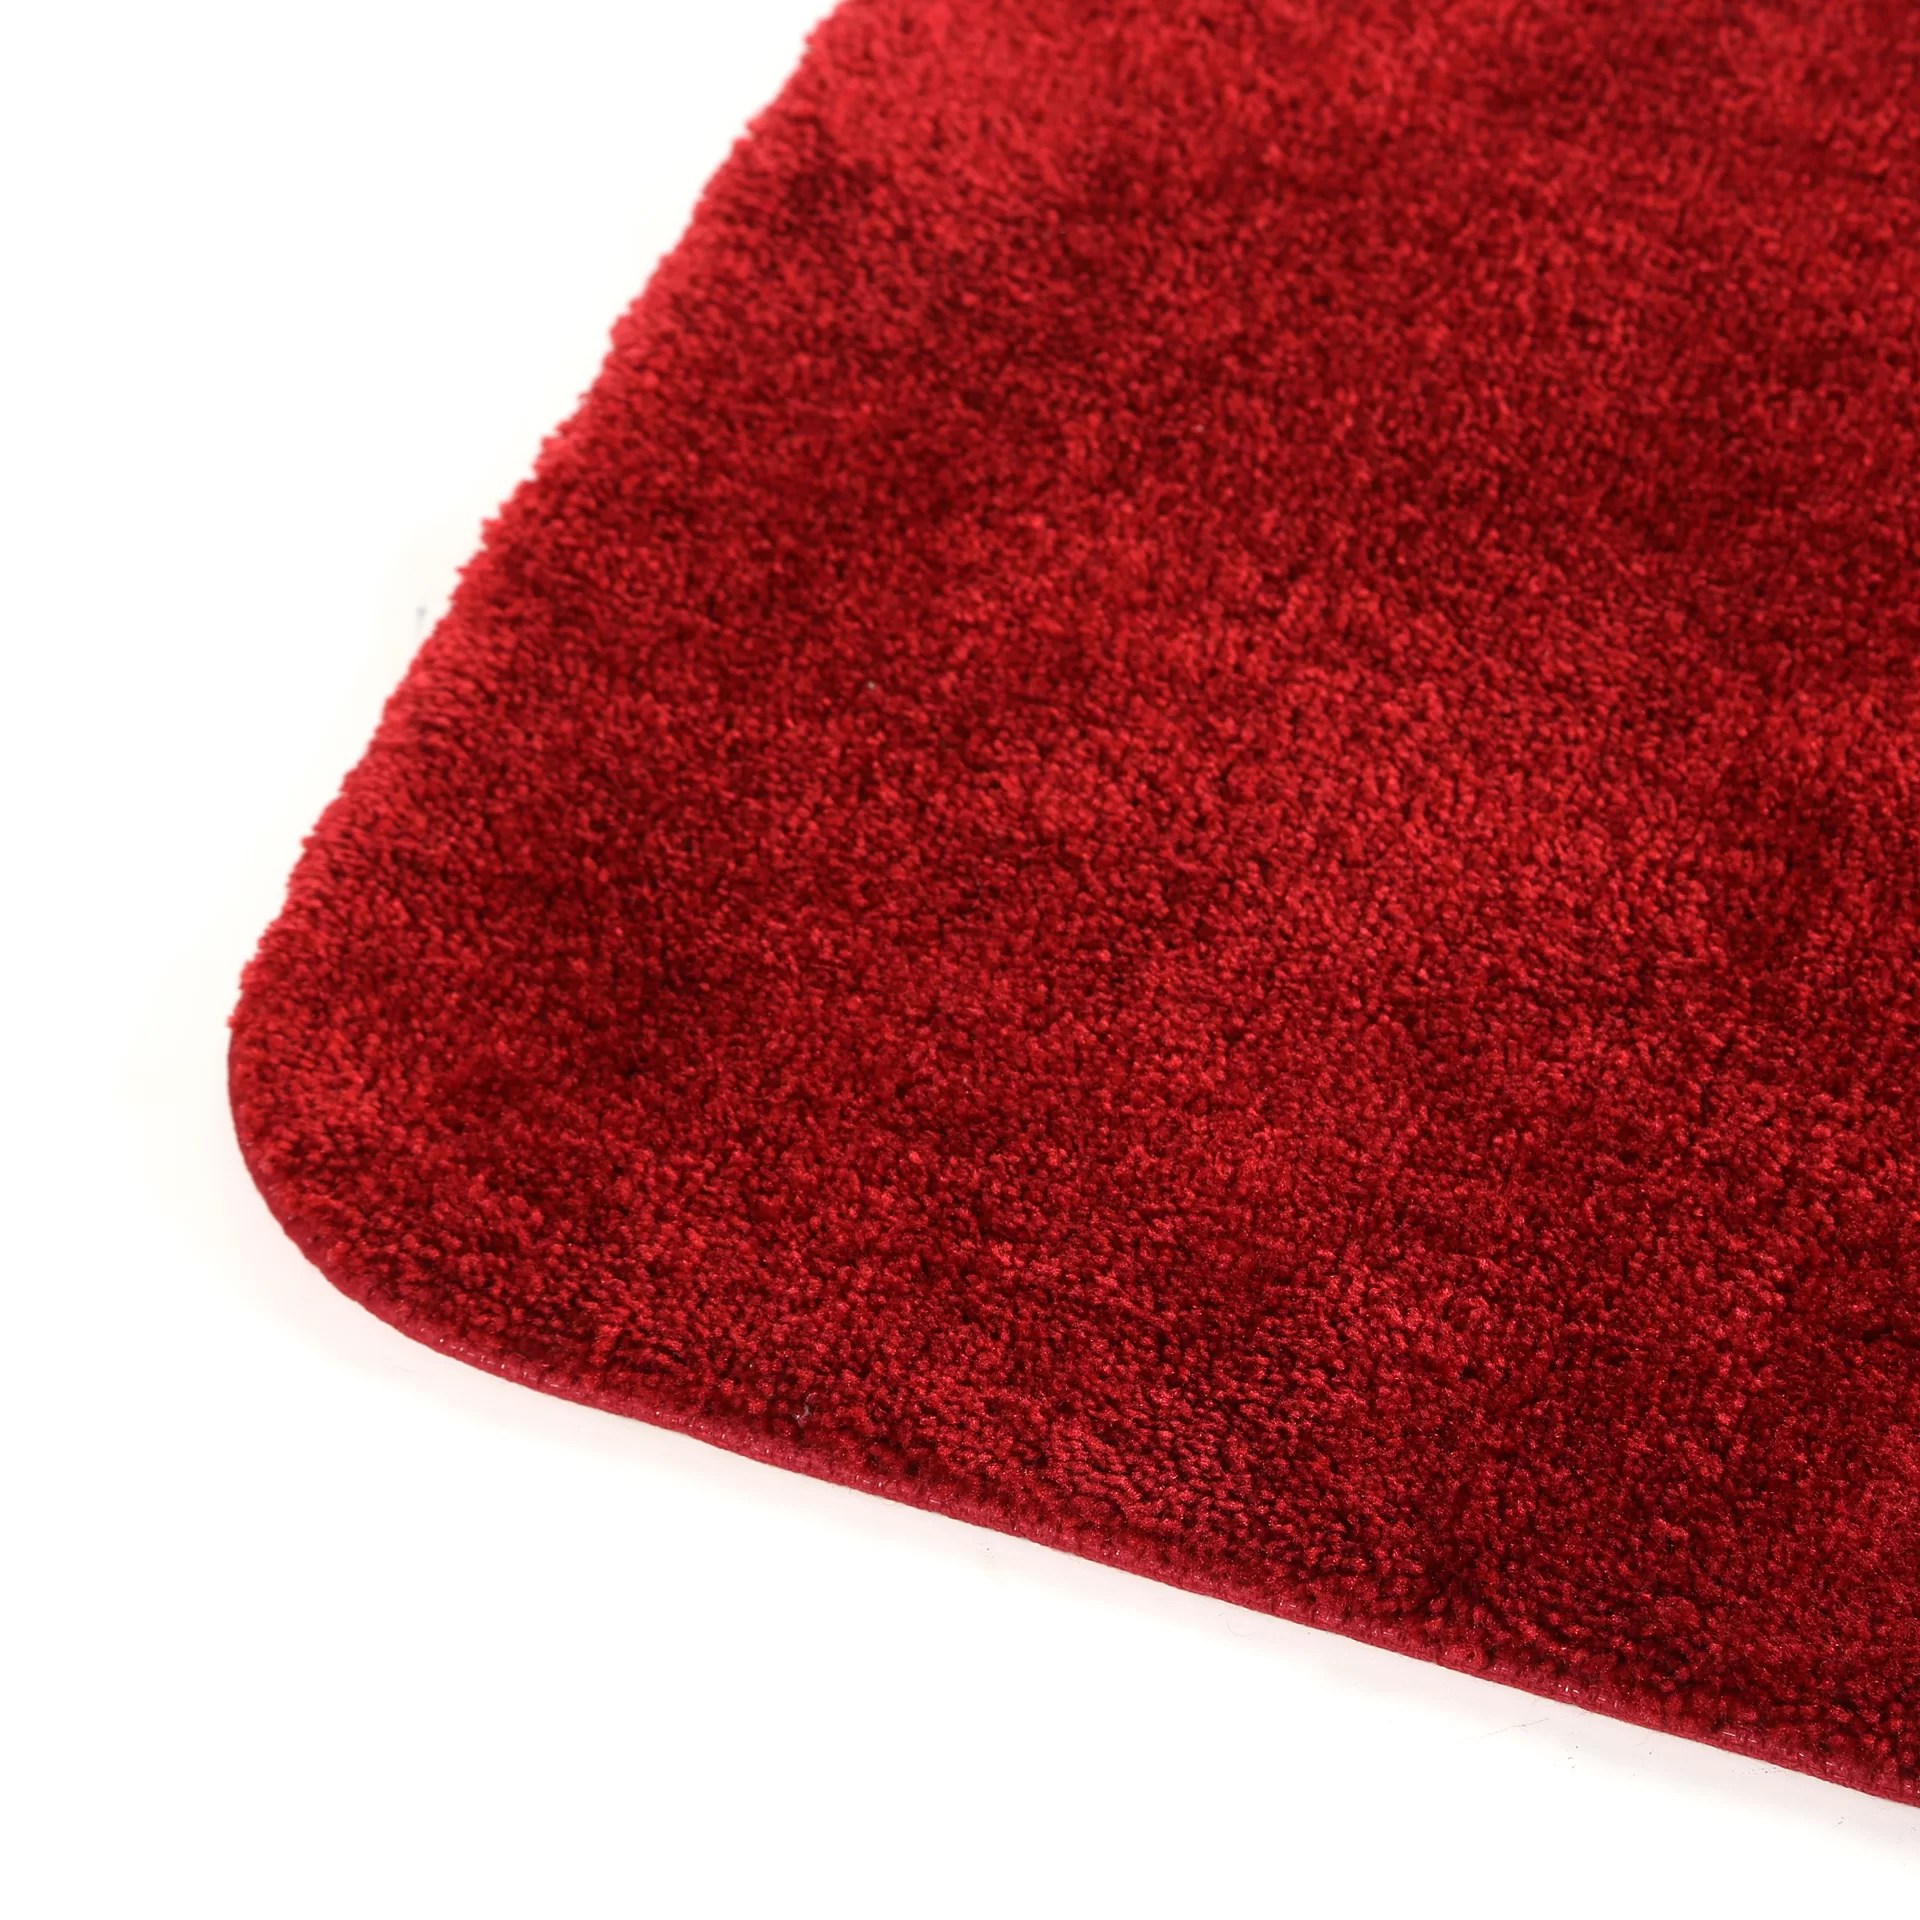 Charlton Home Stanley 2 Piece Red Bath Rug Set  Reviews